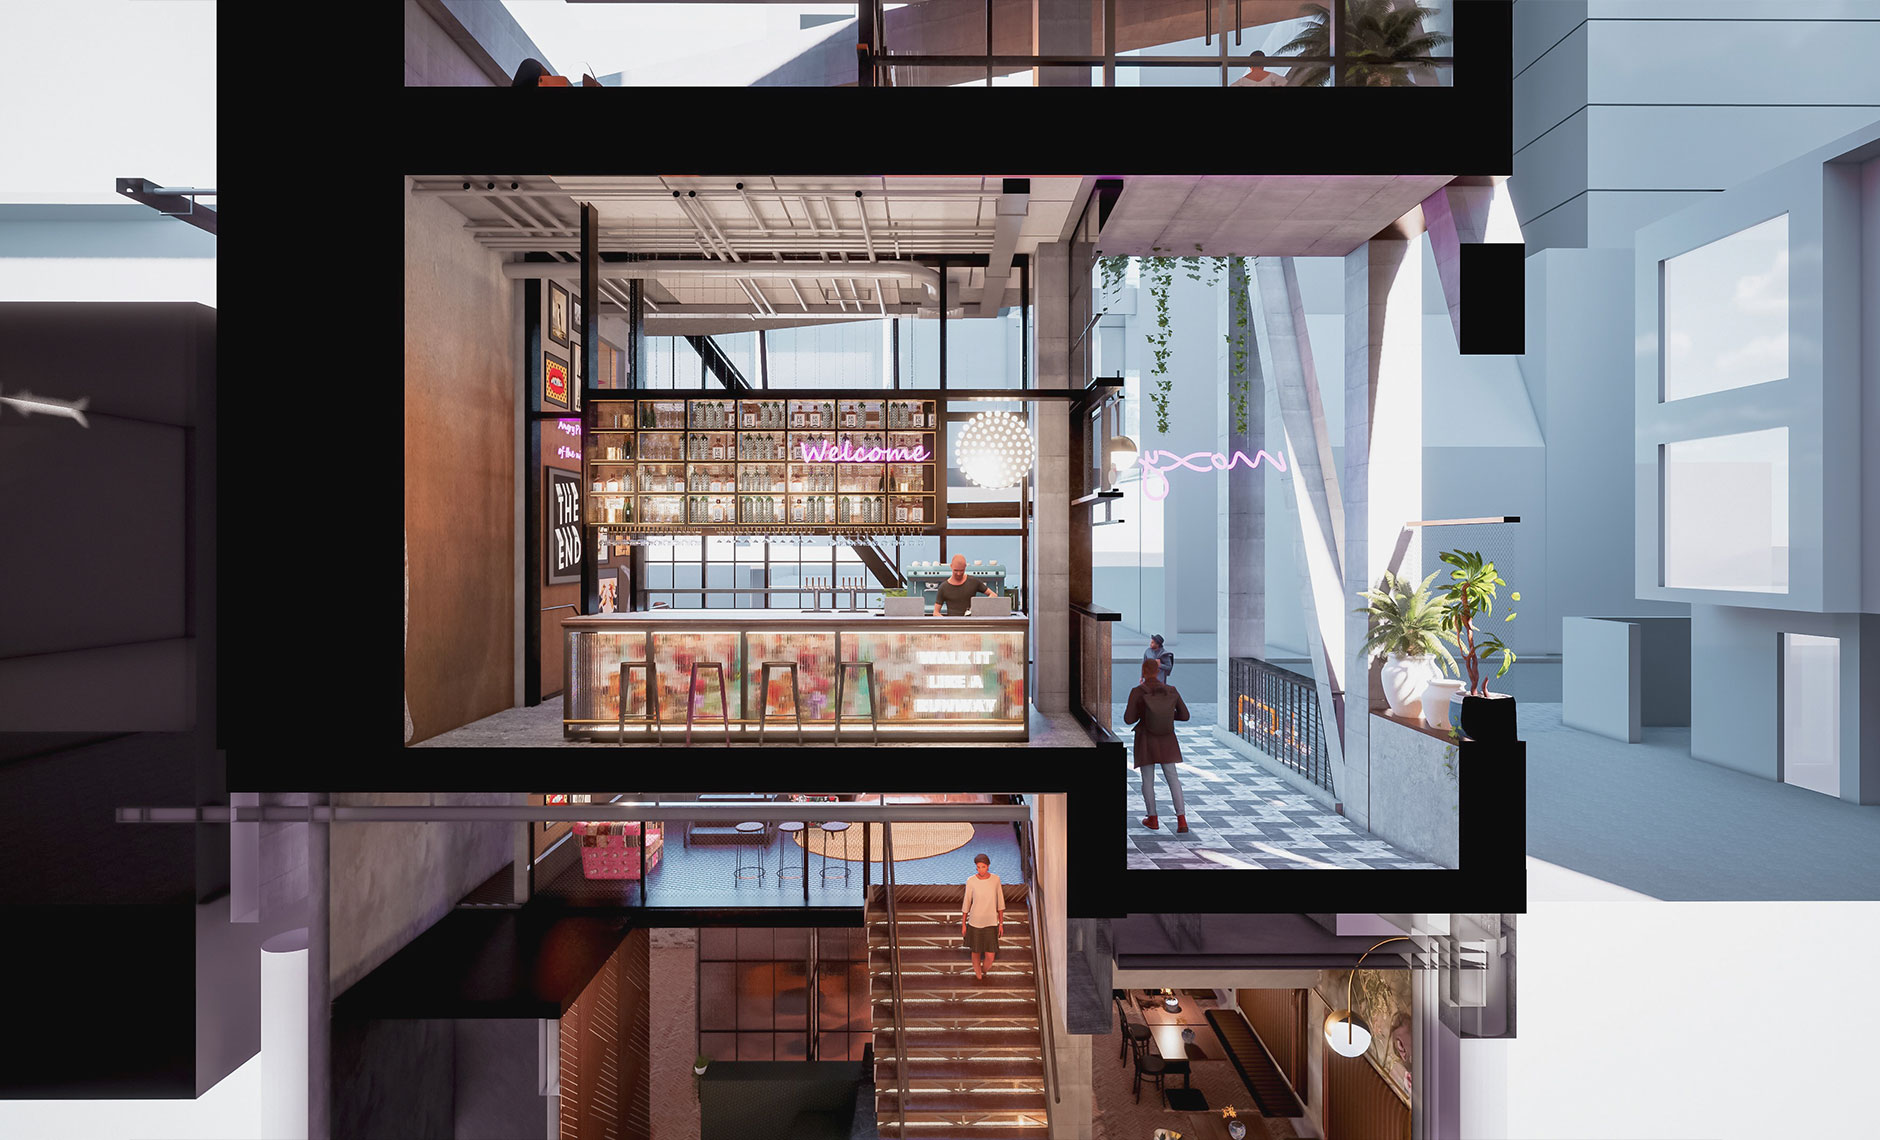 Hotels & Hospitality project in South Yarra VIC